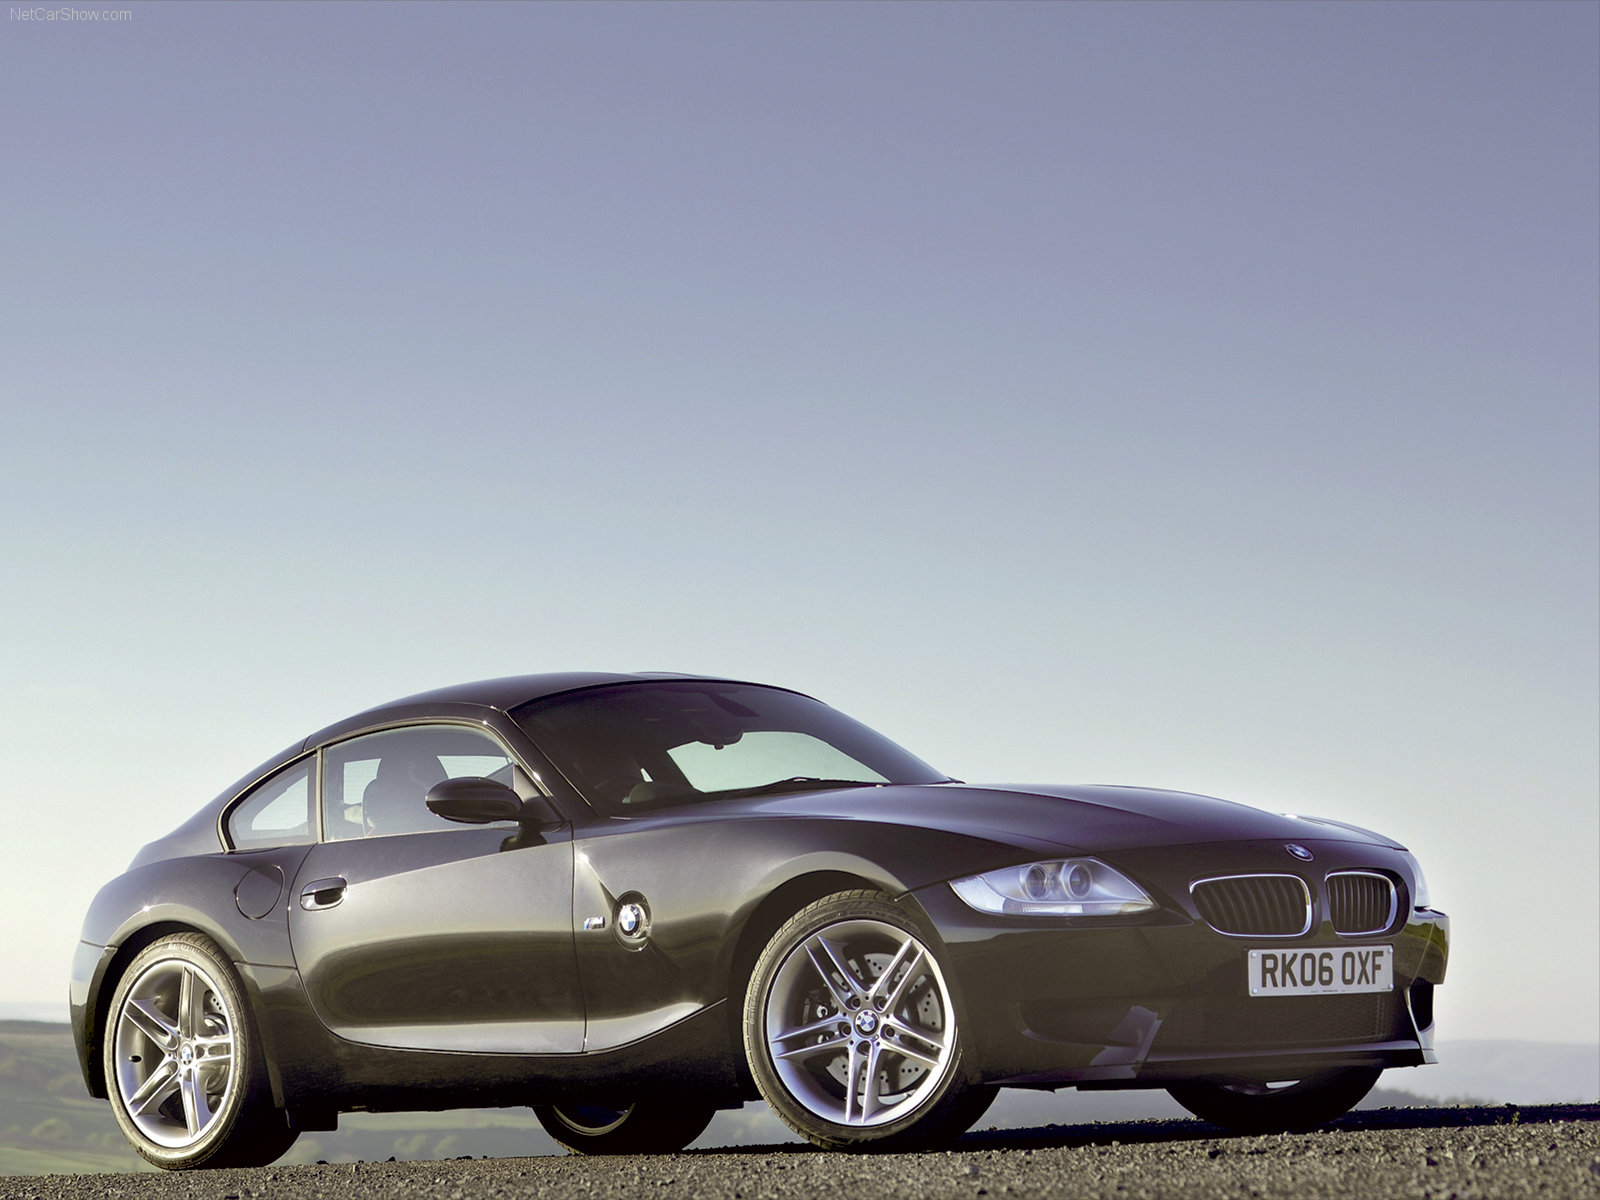 bmw z4 m coupe picture 37031 bmw photo gallery. Black Bedroom Furniture Sets. Home Design Ideas